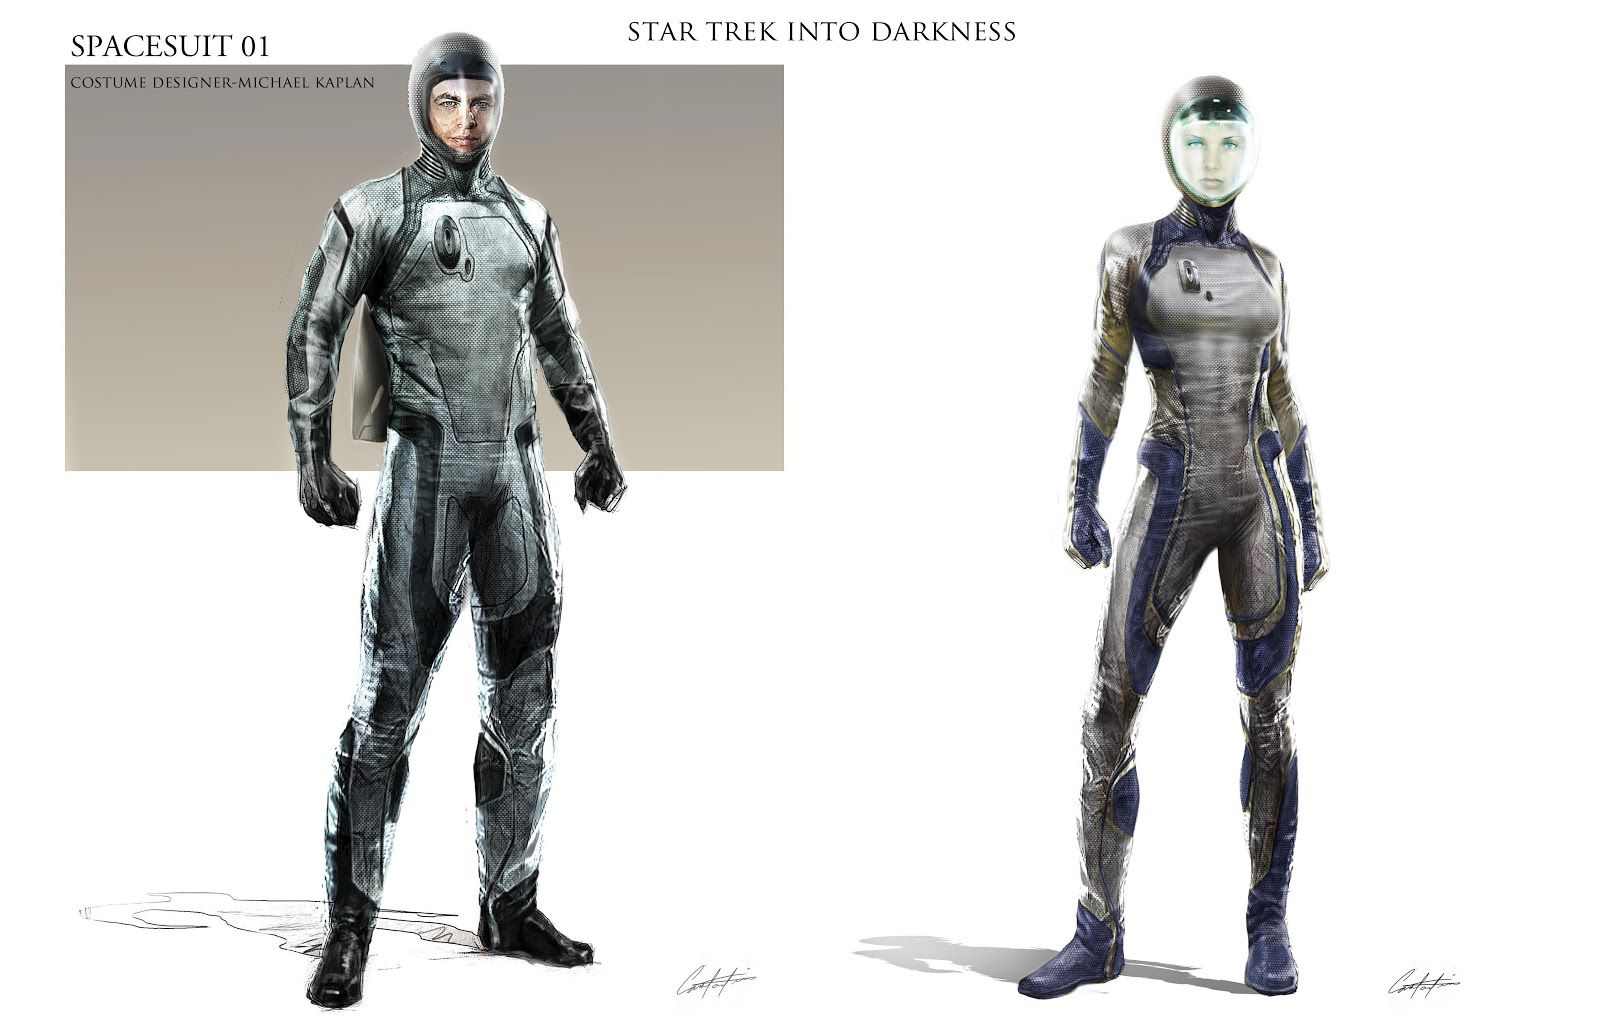 Poseidon Crew Diving Suits 348705836 additionally 2559818 further 2012 11 01 archive in addition 492440540481743496 in addition Concept Art Action Figure Turn 262201752. on dead space rig design